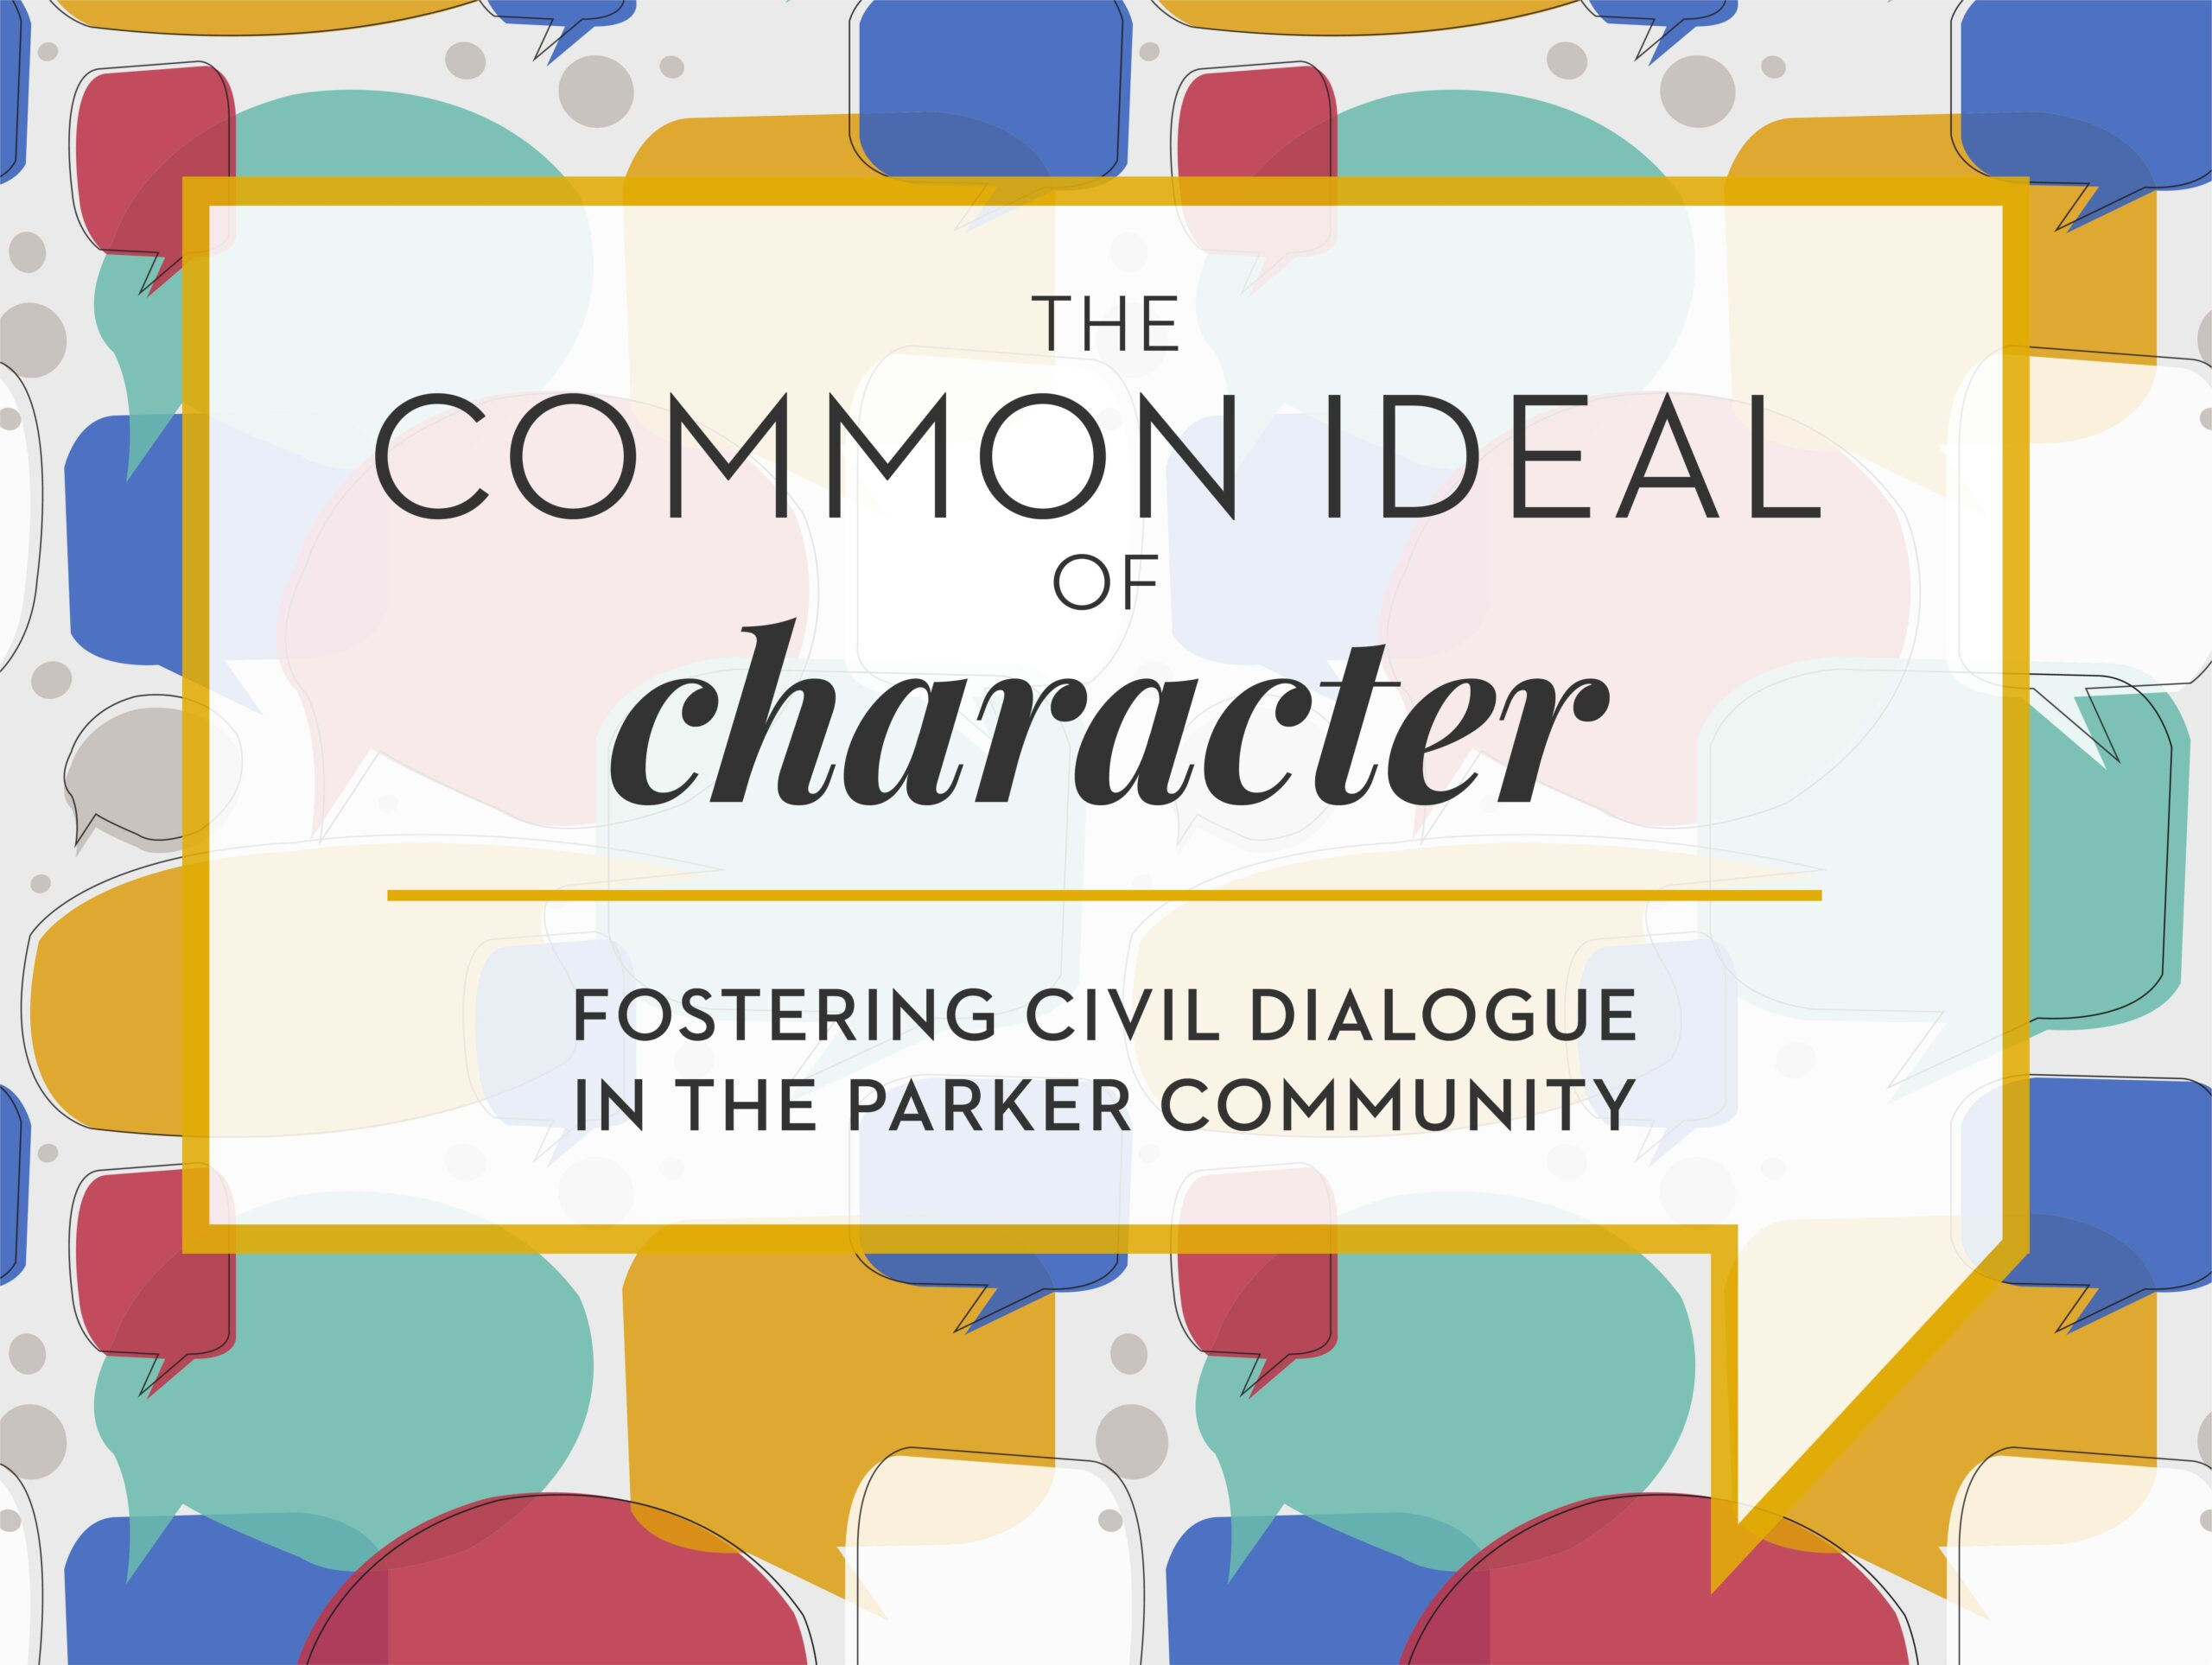 The Common Ideal of Character: Poll Questions